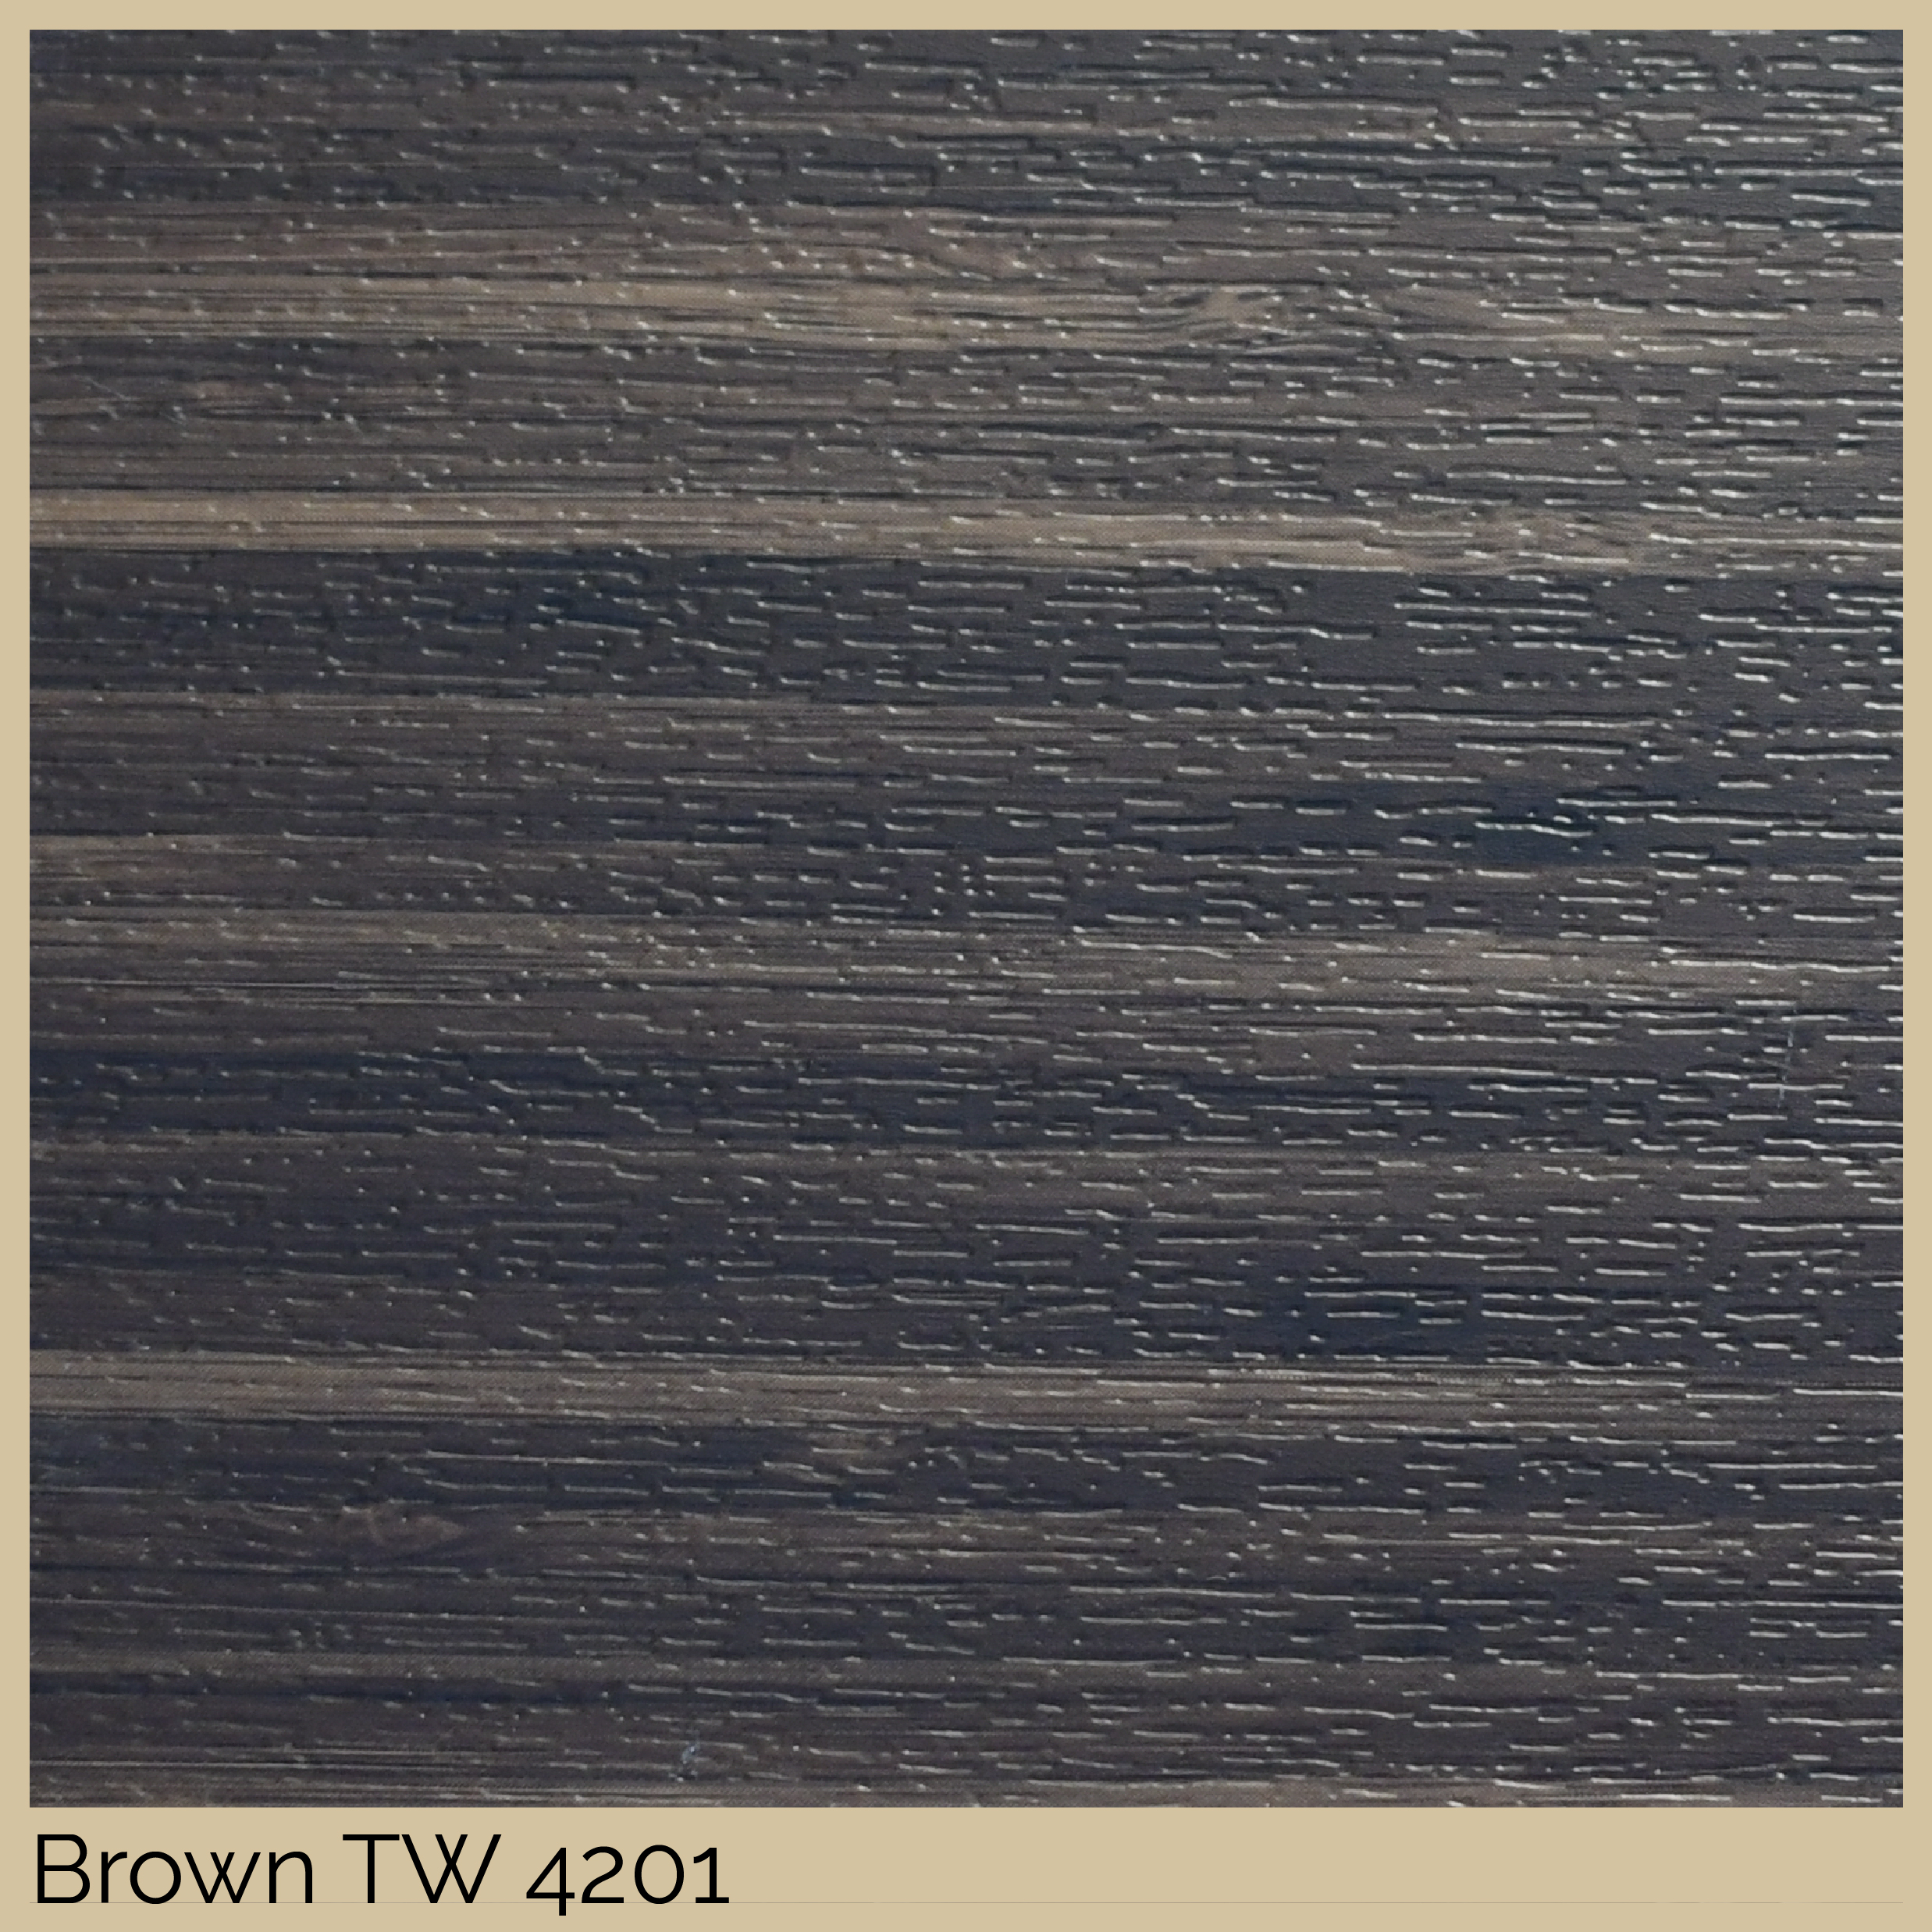 Brown TW 4201.jpg